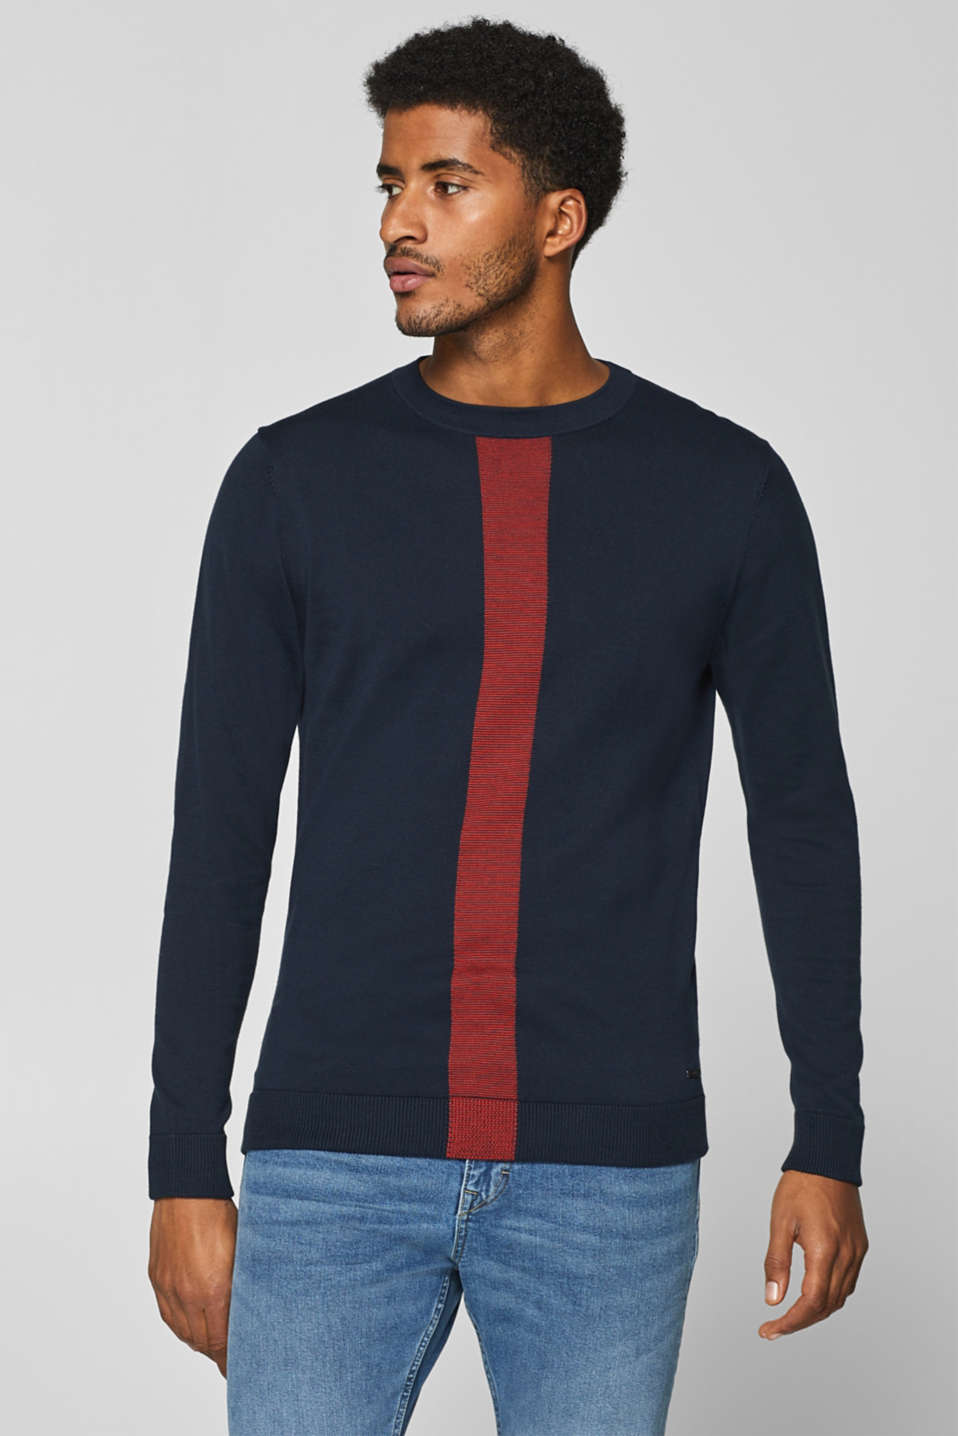 Esprit - Sweater aus 100% Pima Cotton